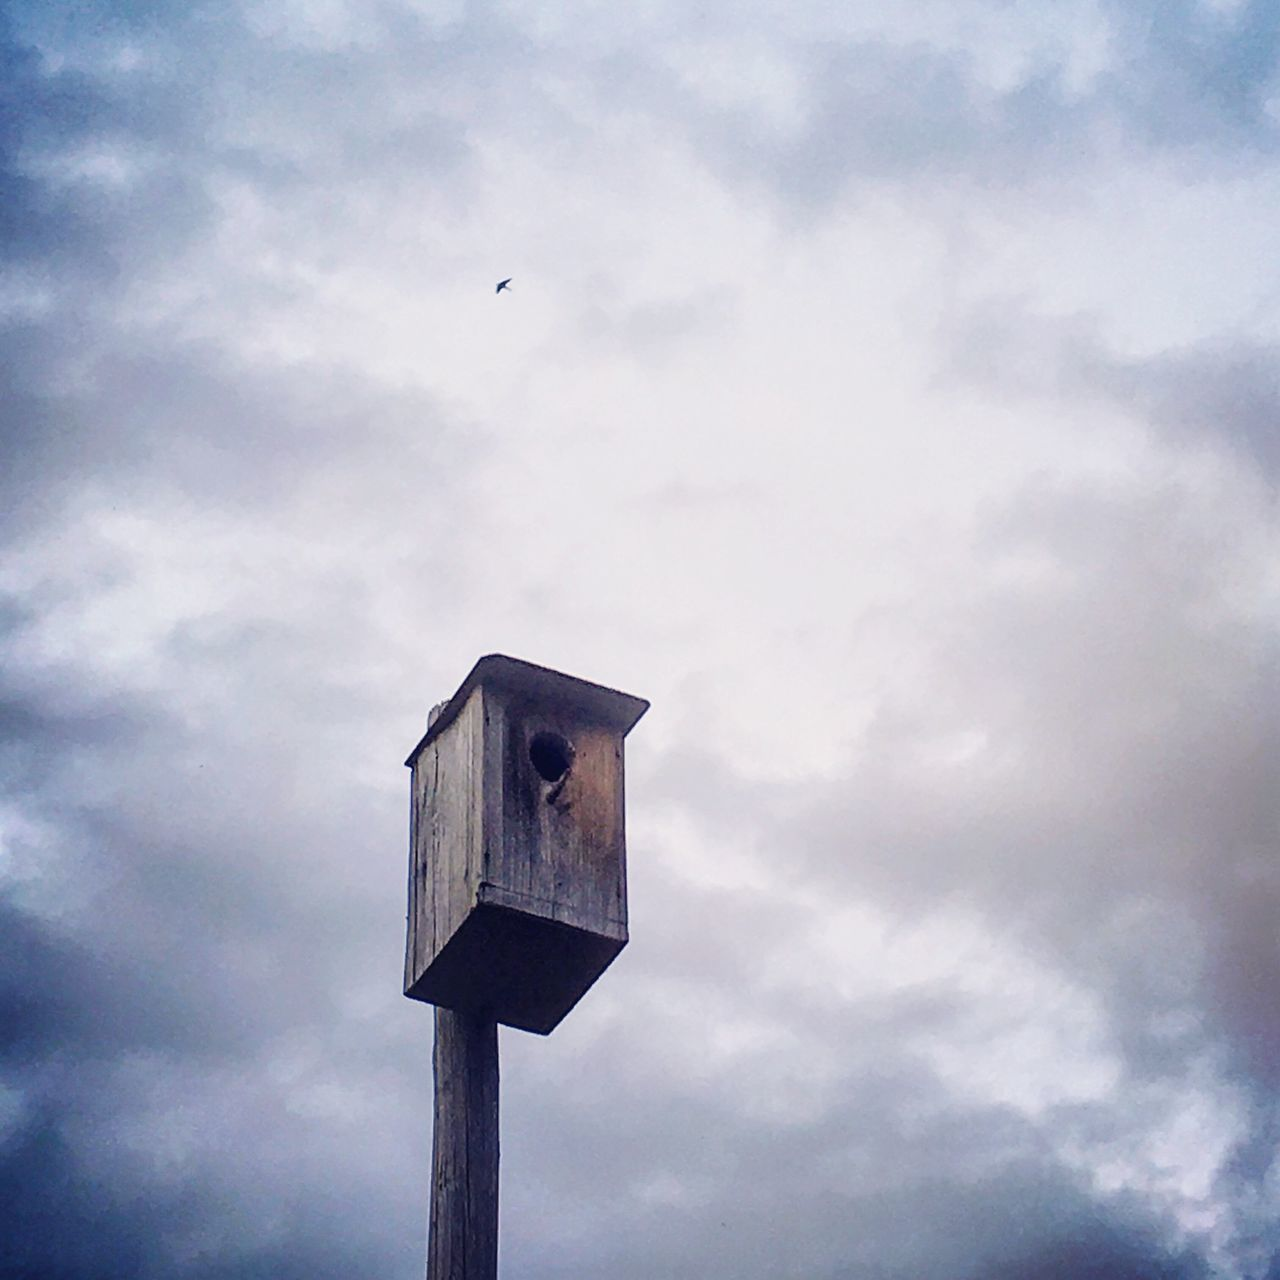 Bird house and a bird flying in the sky Bird Sky Cloud - Sky Low Angle View No People Animal Themes Animals In The Wild Birdhouse Outdoors Nature Perching Day Fly Flying Poetry Poetry In Pictures Poetrycommunity